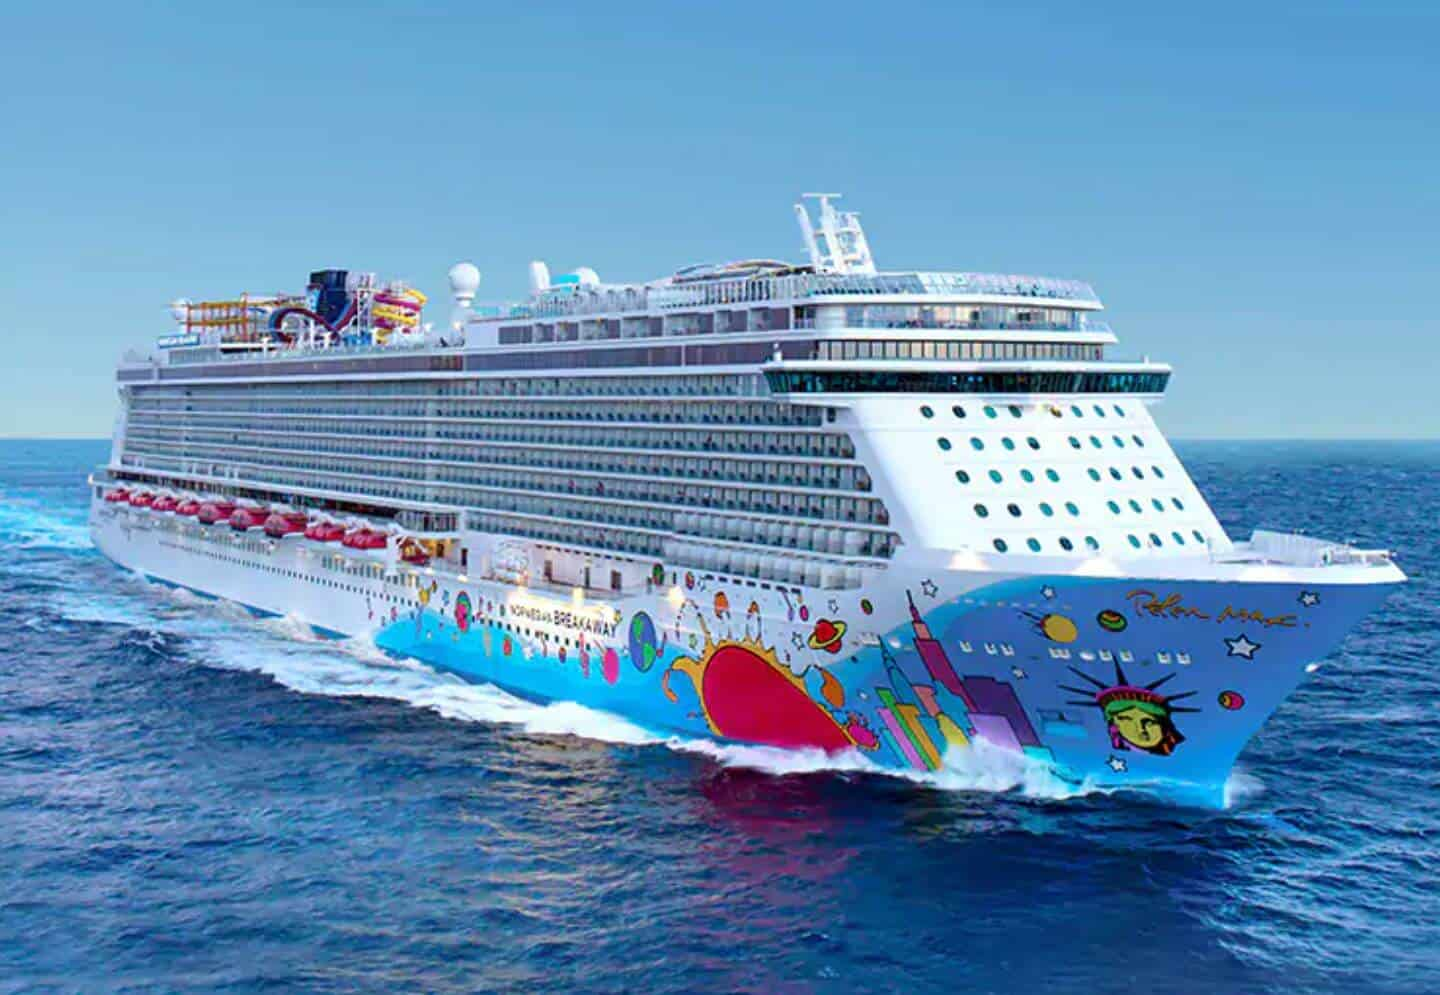 Norwegian Cruise Ship - How to buy Norwegian Cruise Line Stock for beginers in 2020 | Learnbonds